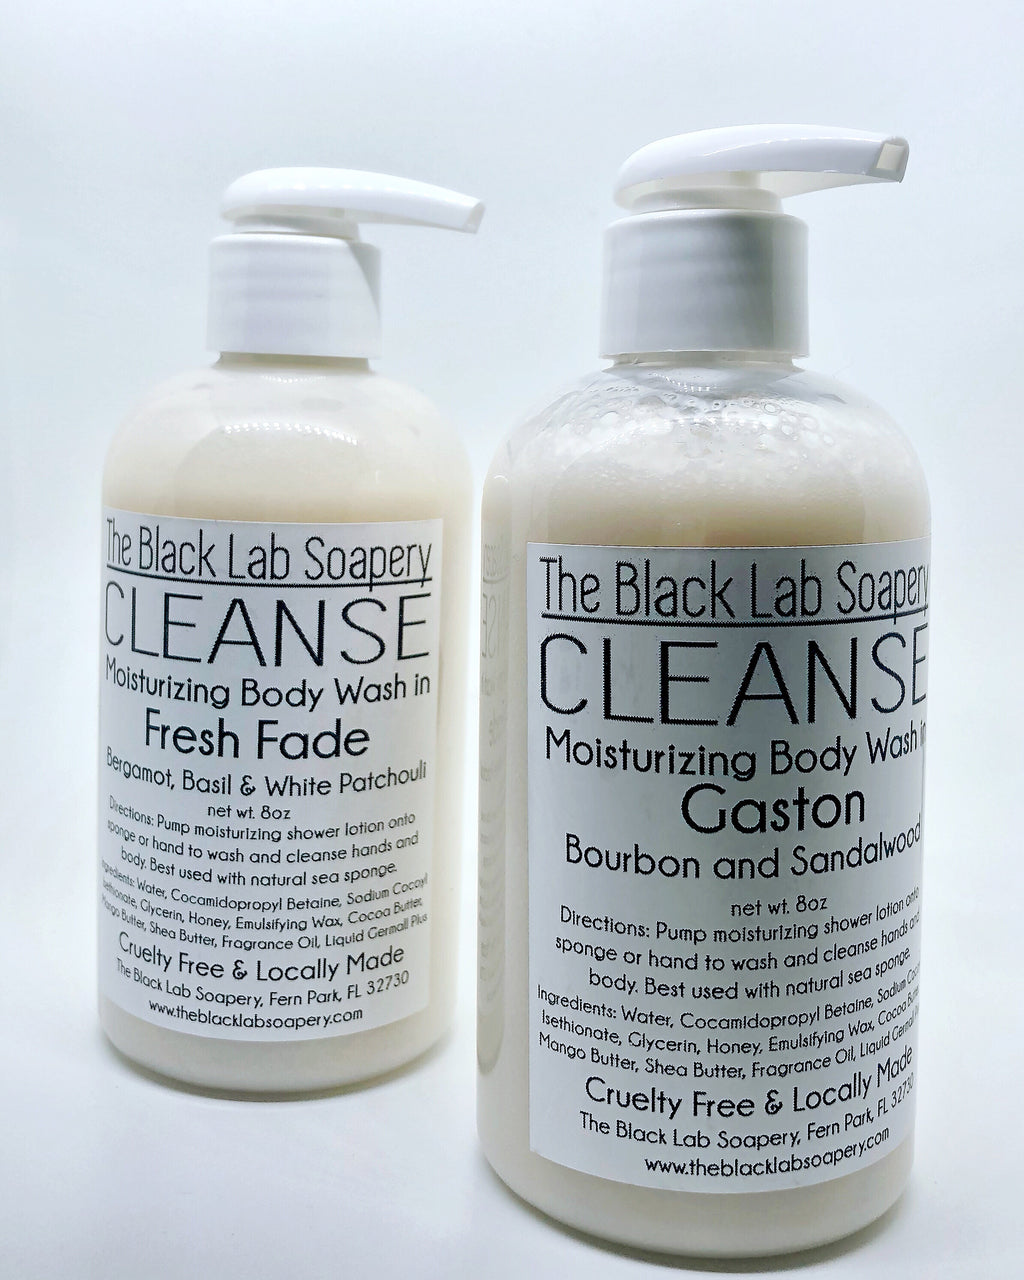 Cleanse - Cream Body Wash